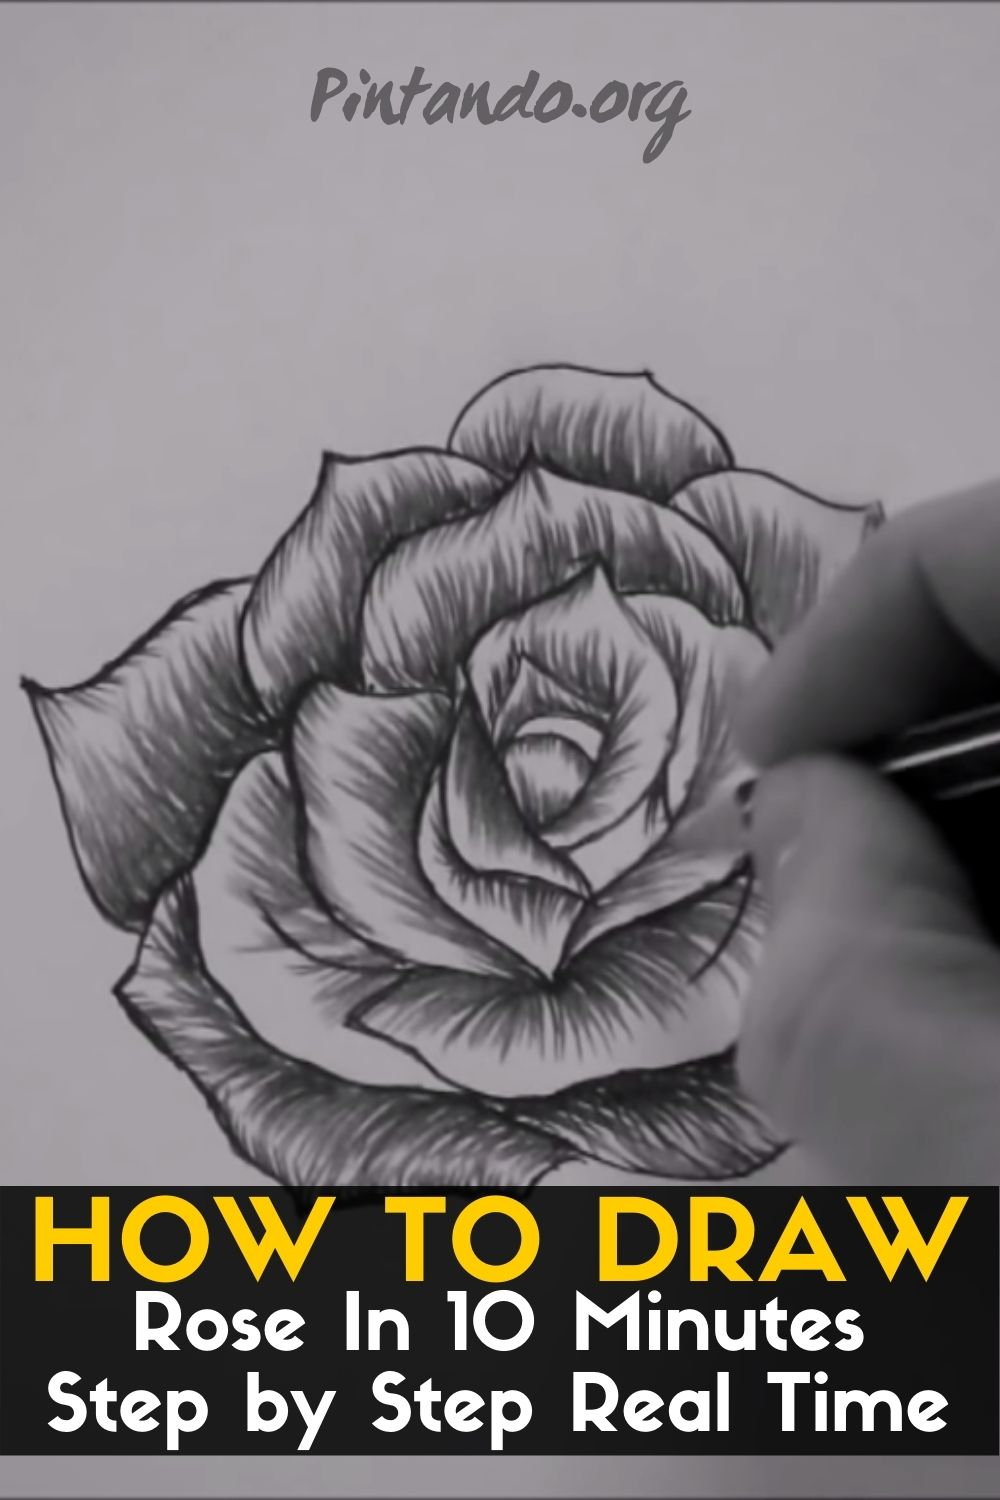 How to Draw a Rose In 10 Minutes Step by Step Real Time (1)